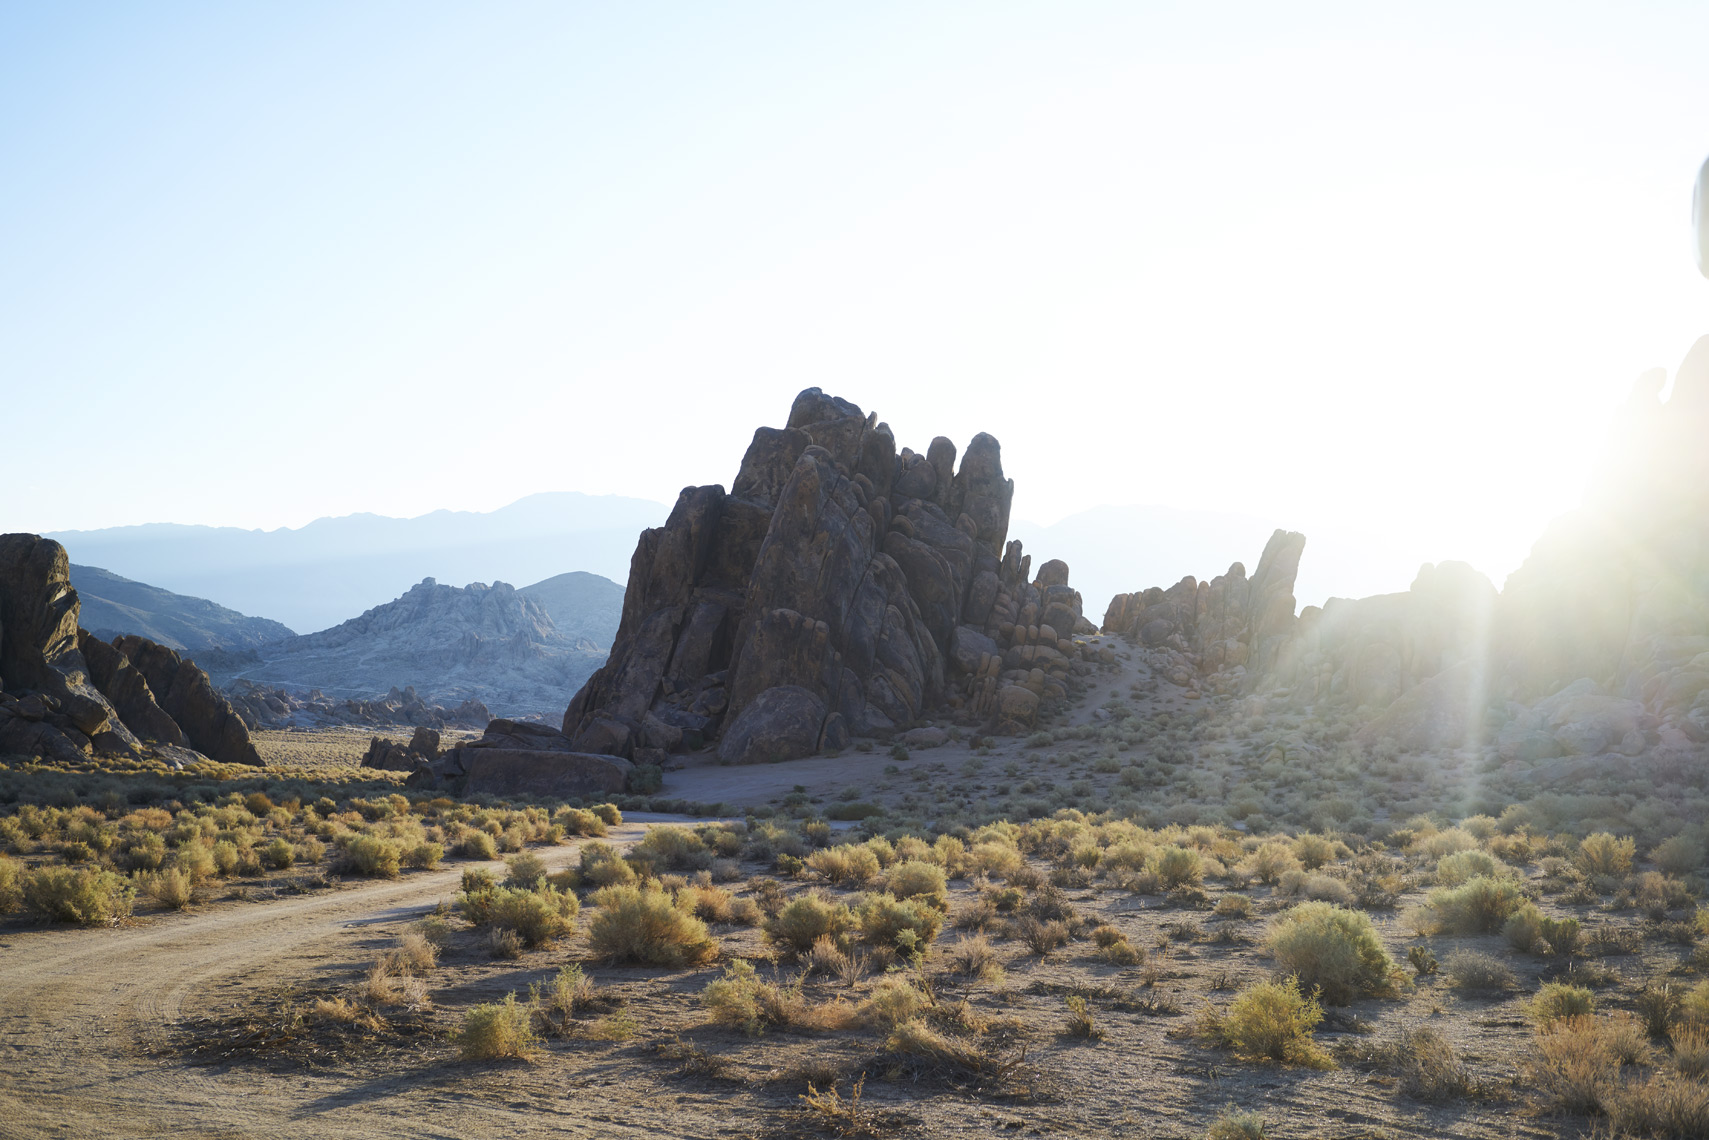 Desert Sunrise landscape showcasing rock formations in Alabama Hills, California Sean Dagen Photography